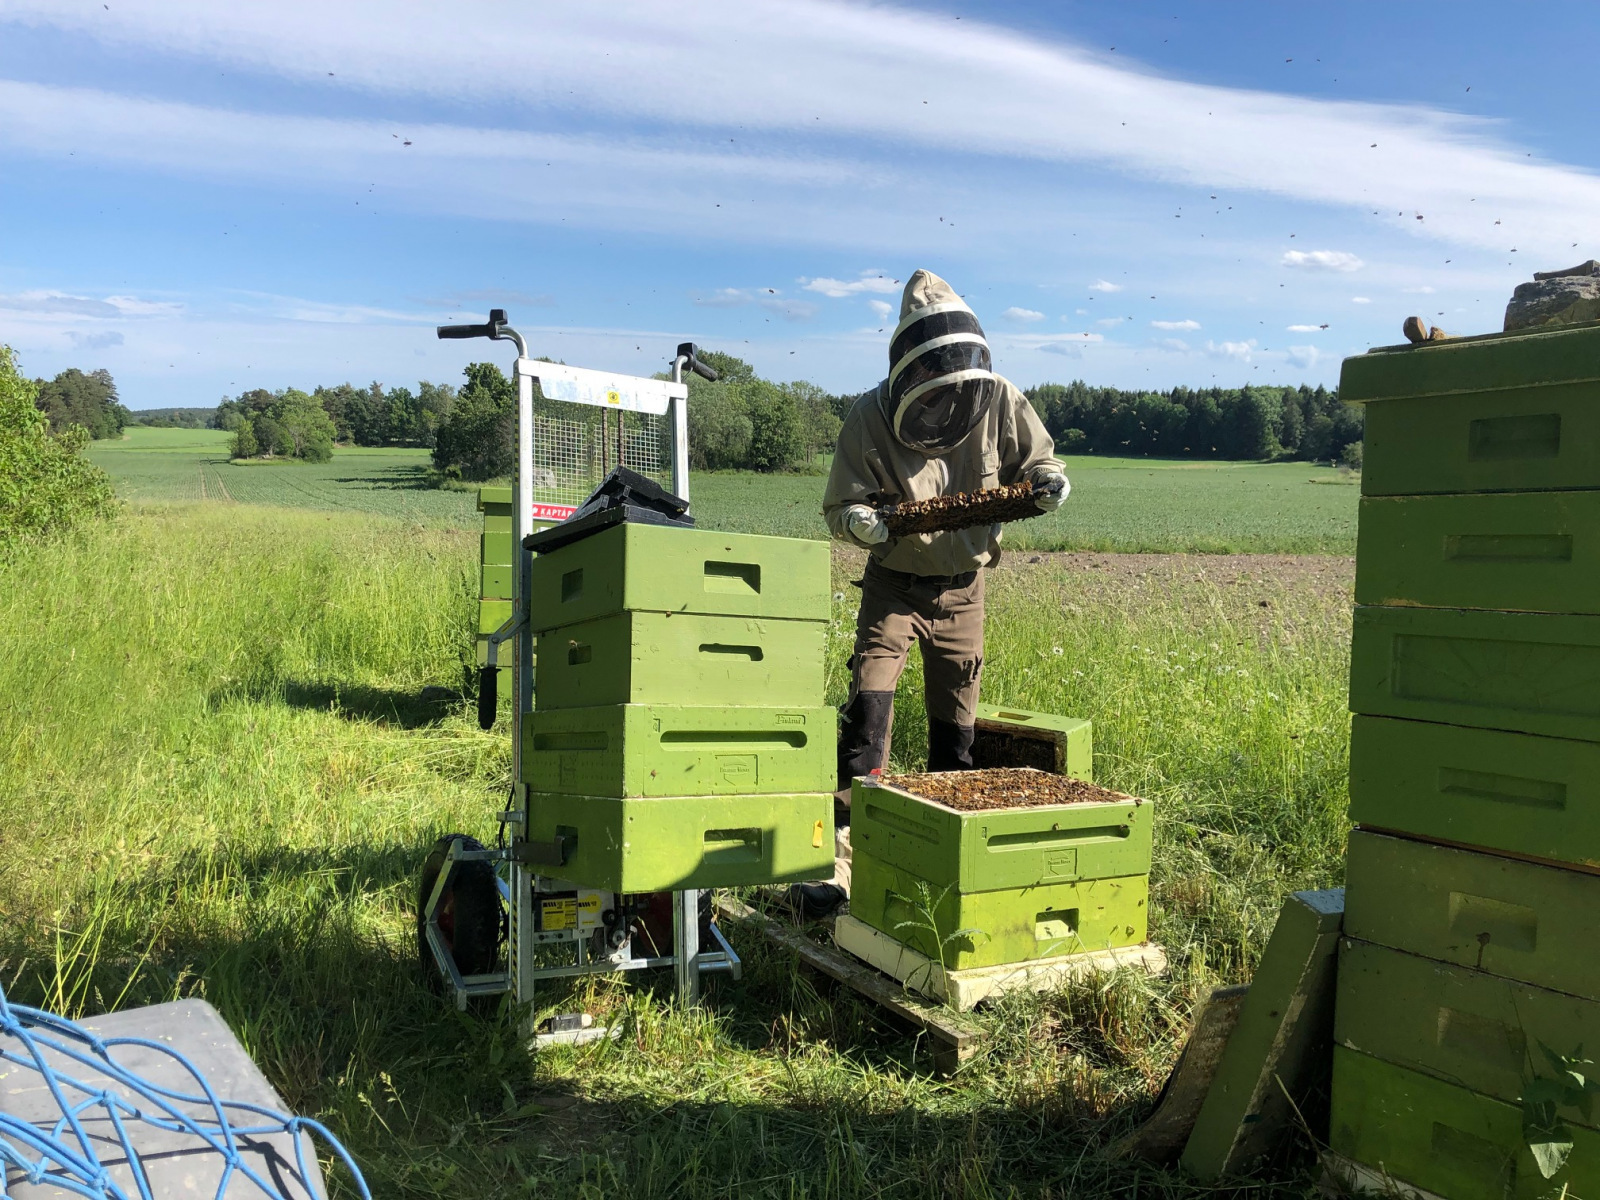 Lifting aid, The new electric lift really simplifies the work in the apiary